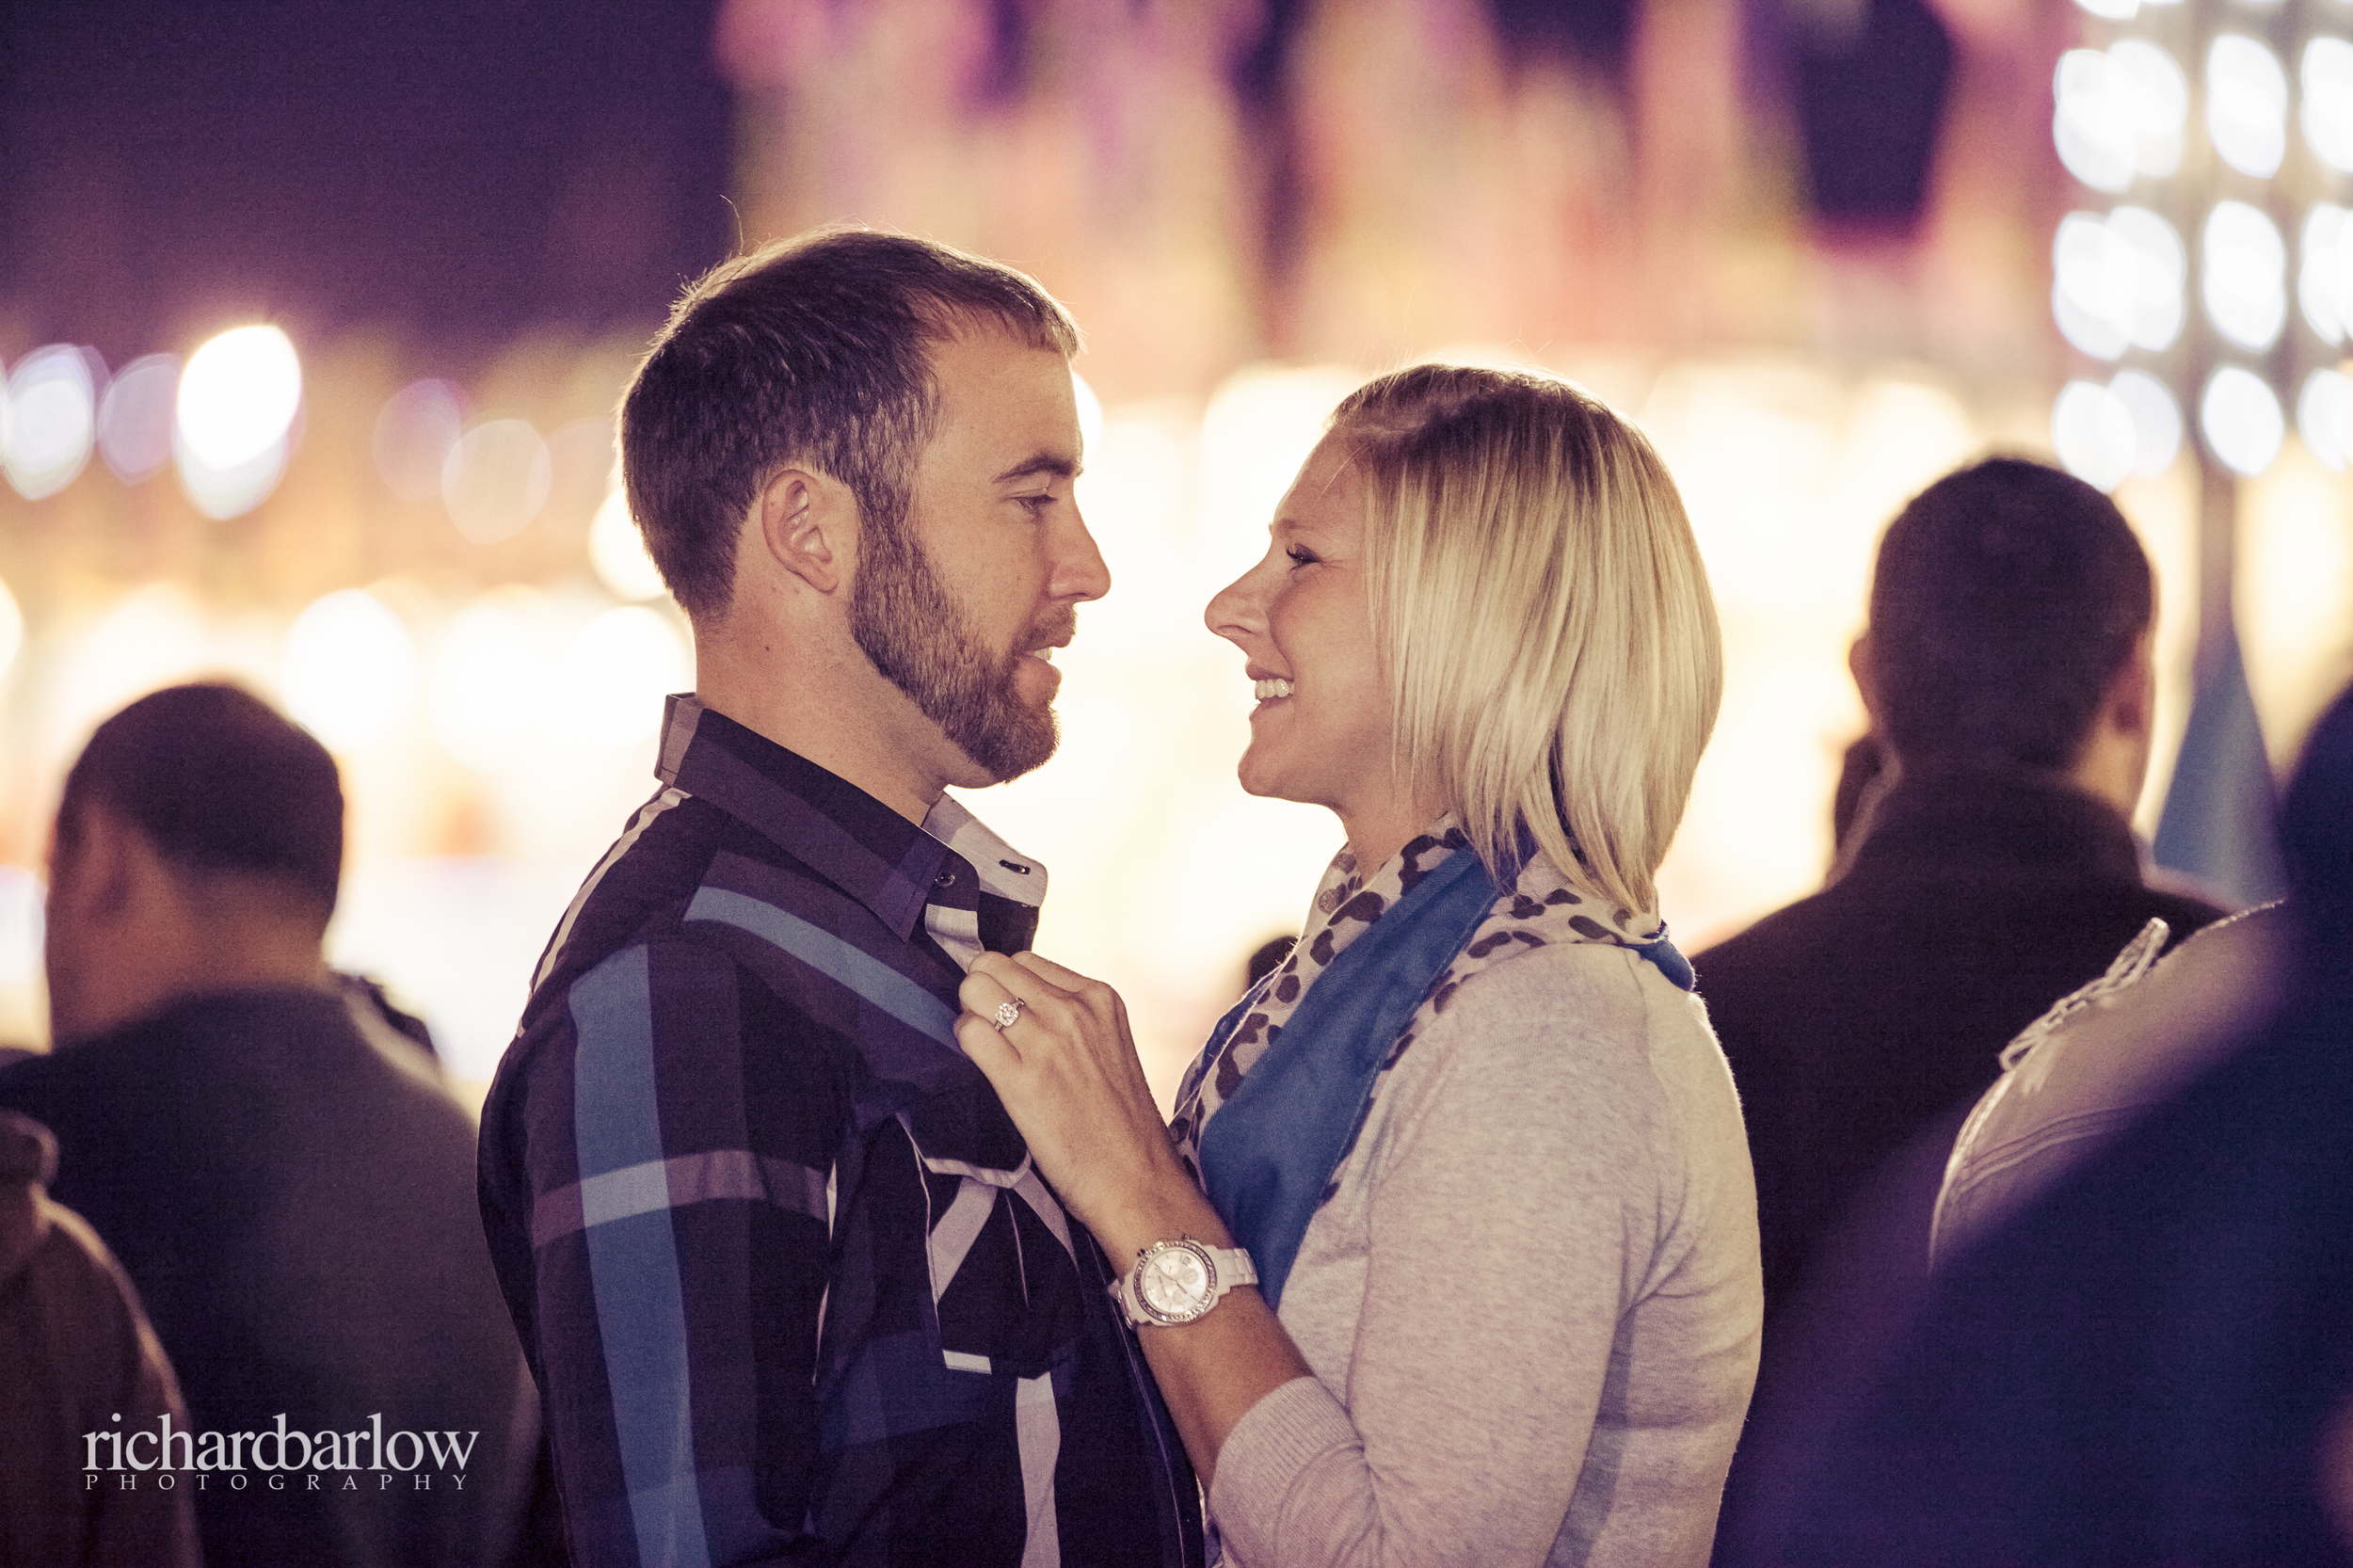 richard barlow photography - Mike and Renee Engagement Session NC-30.jpg